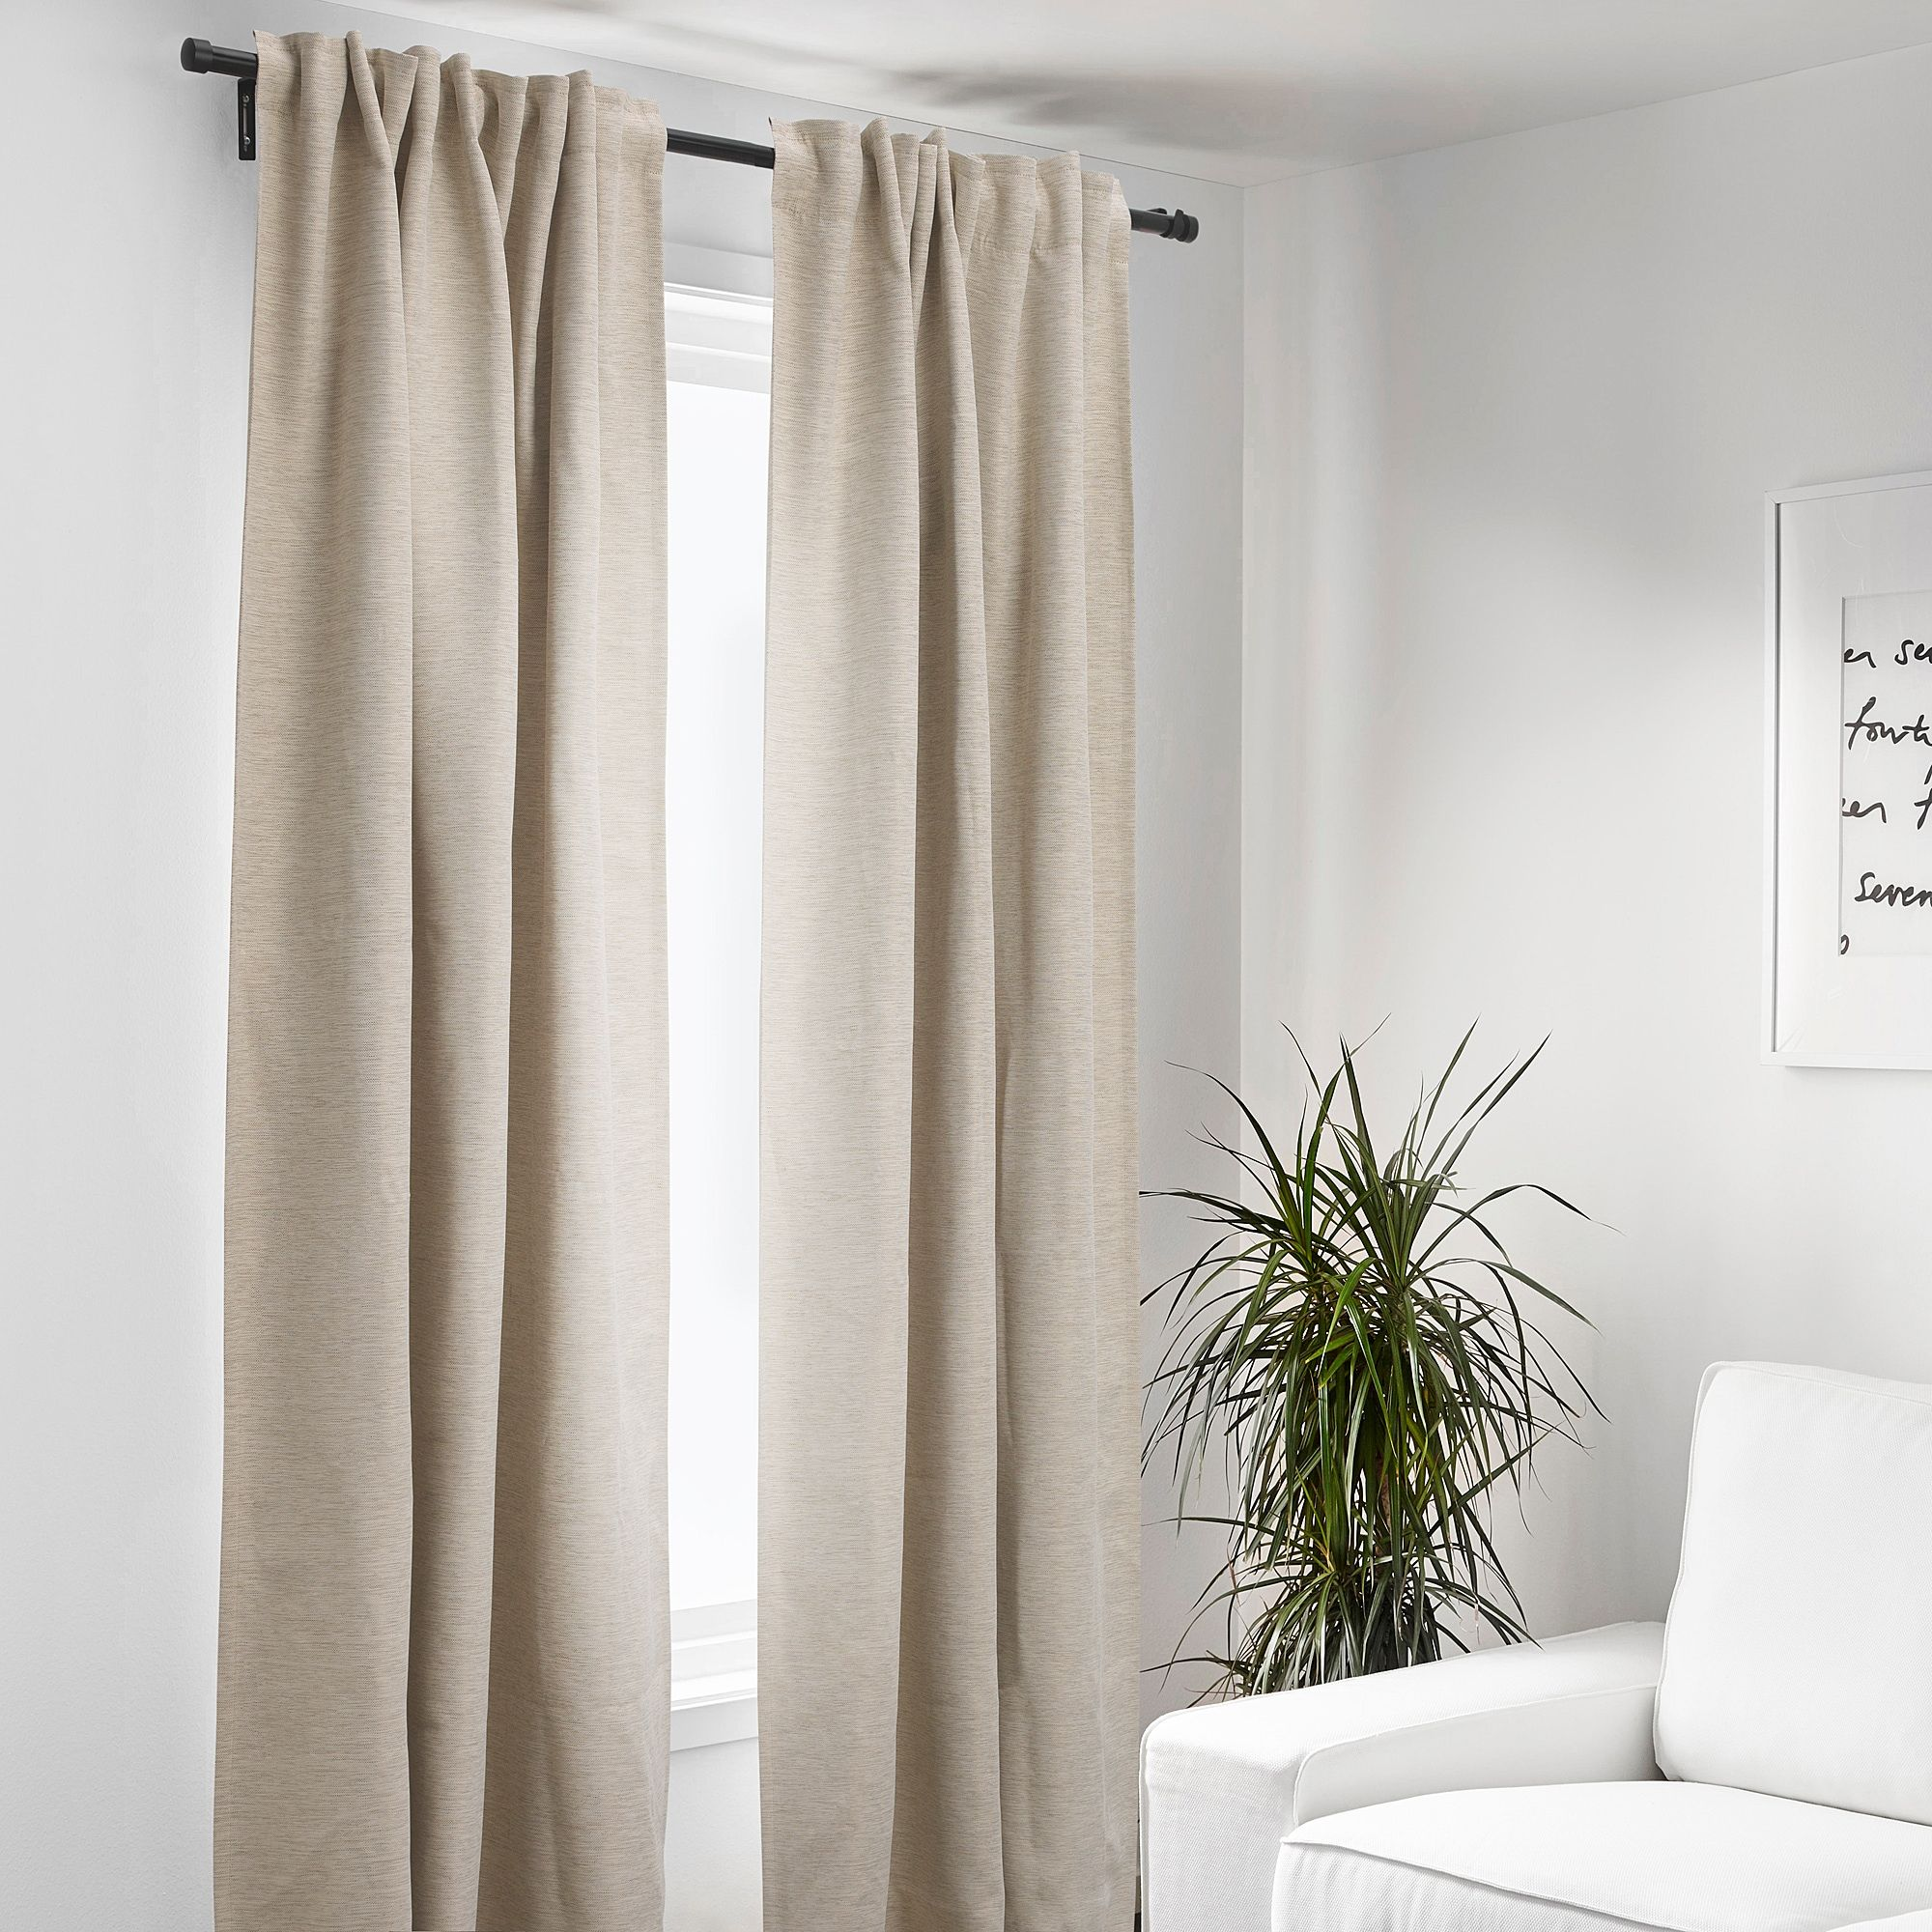 Kalamondin Room Darkening Curtains 1 Pair Beige Ikea Beige Curtains Living Room Curtains Beige Curtains